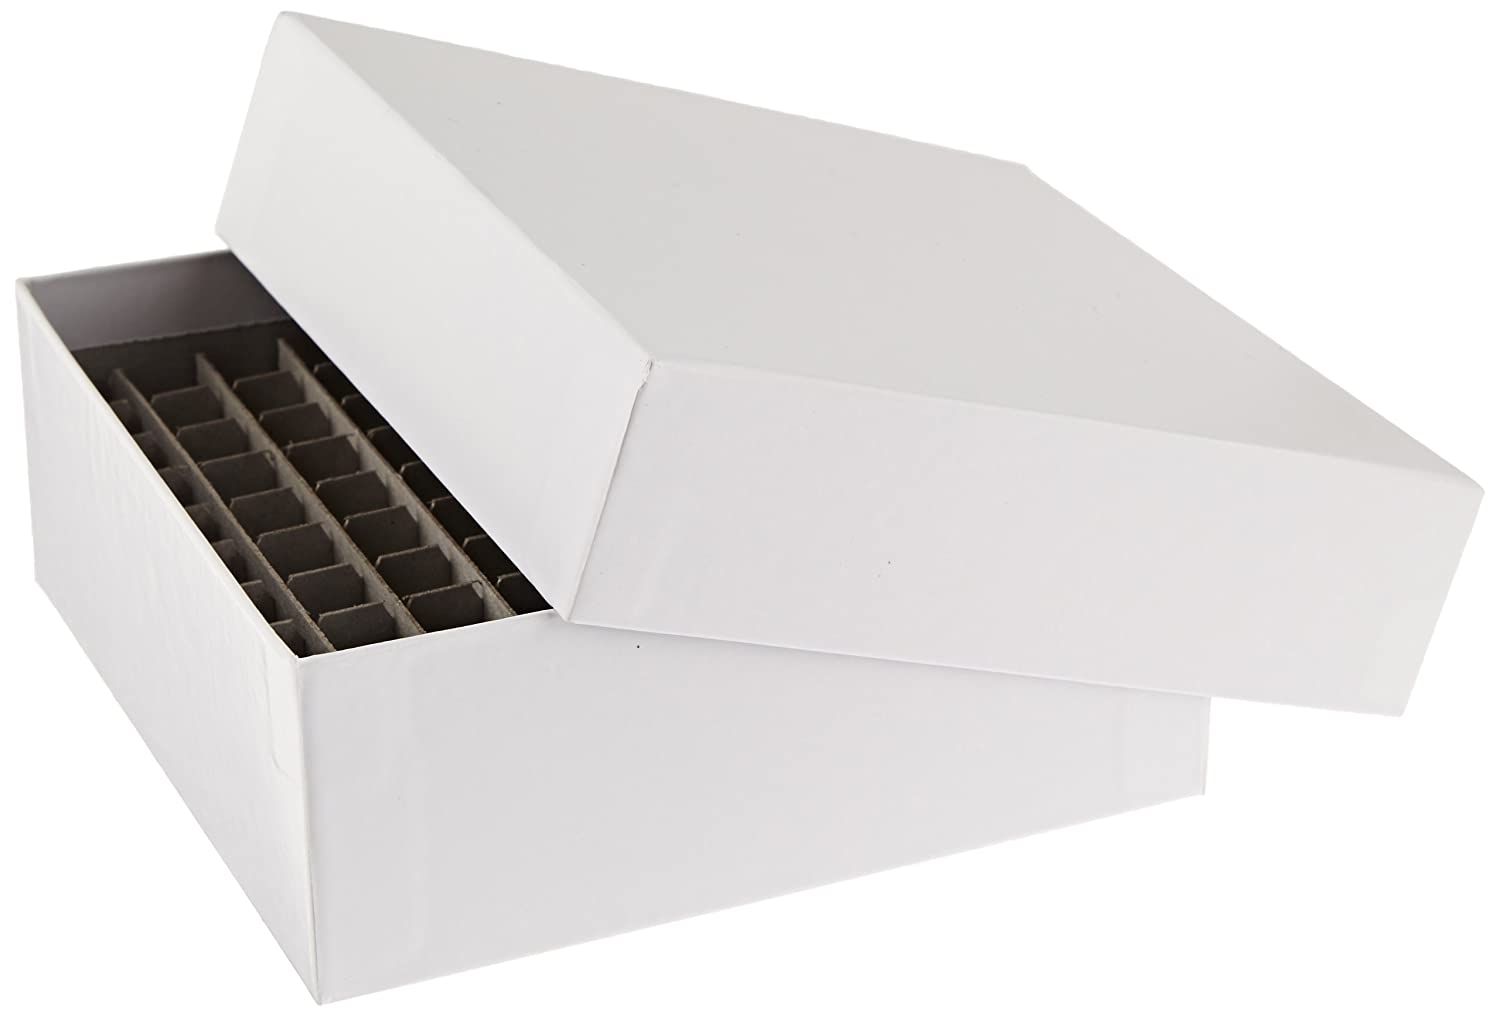 """Alkali Scientific SB2CC-100 White 2"""" Cardboard Freezer Box with 100-Cell Divider, 5-1/4"""" Length x 5-1/4"""" Width x 2"""" Height (10 boxes/pk)"""